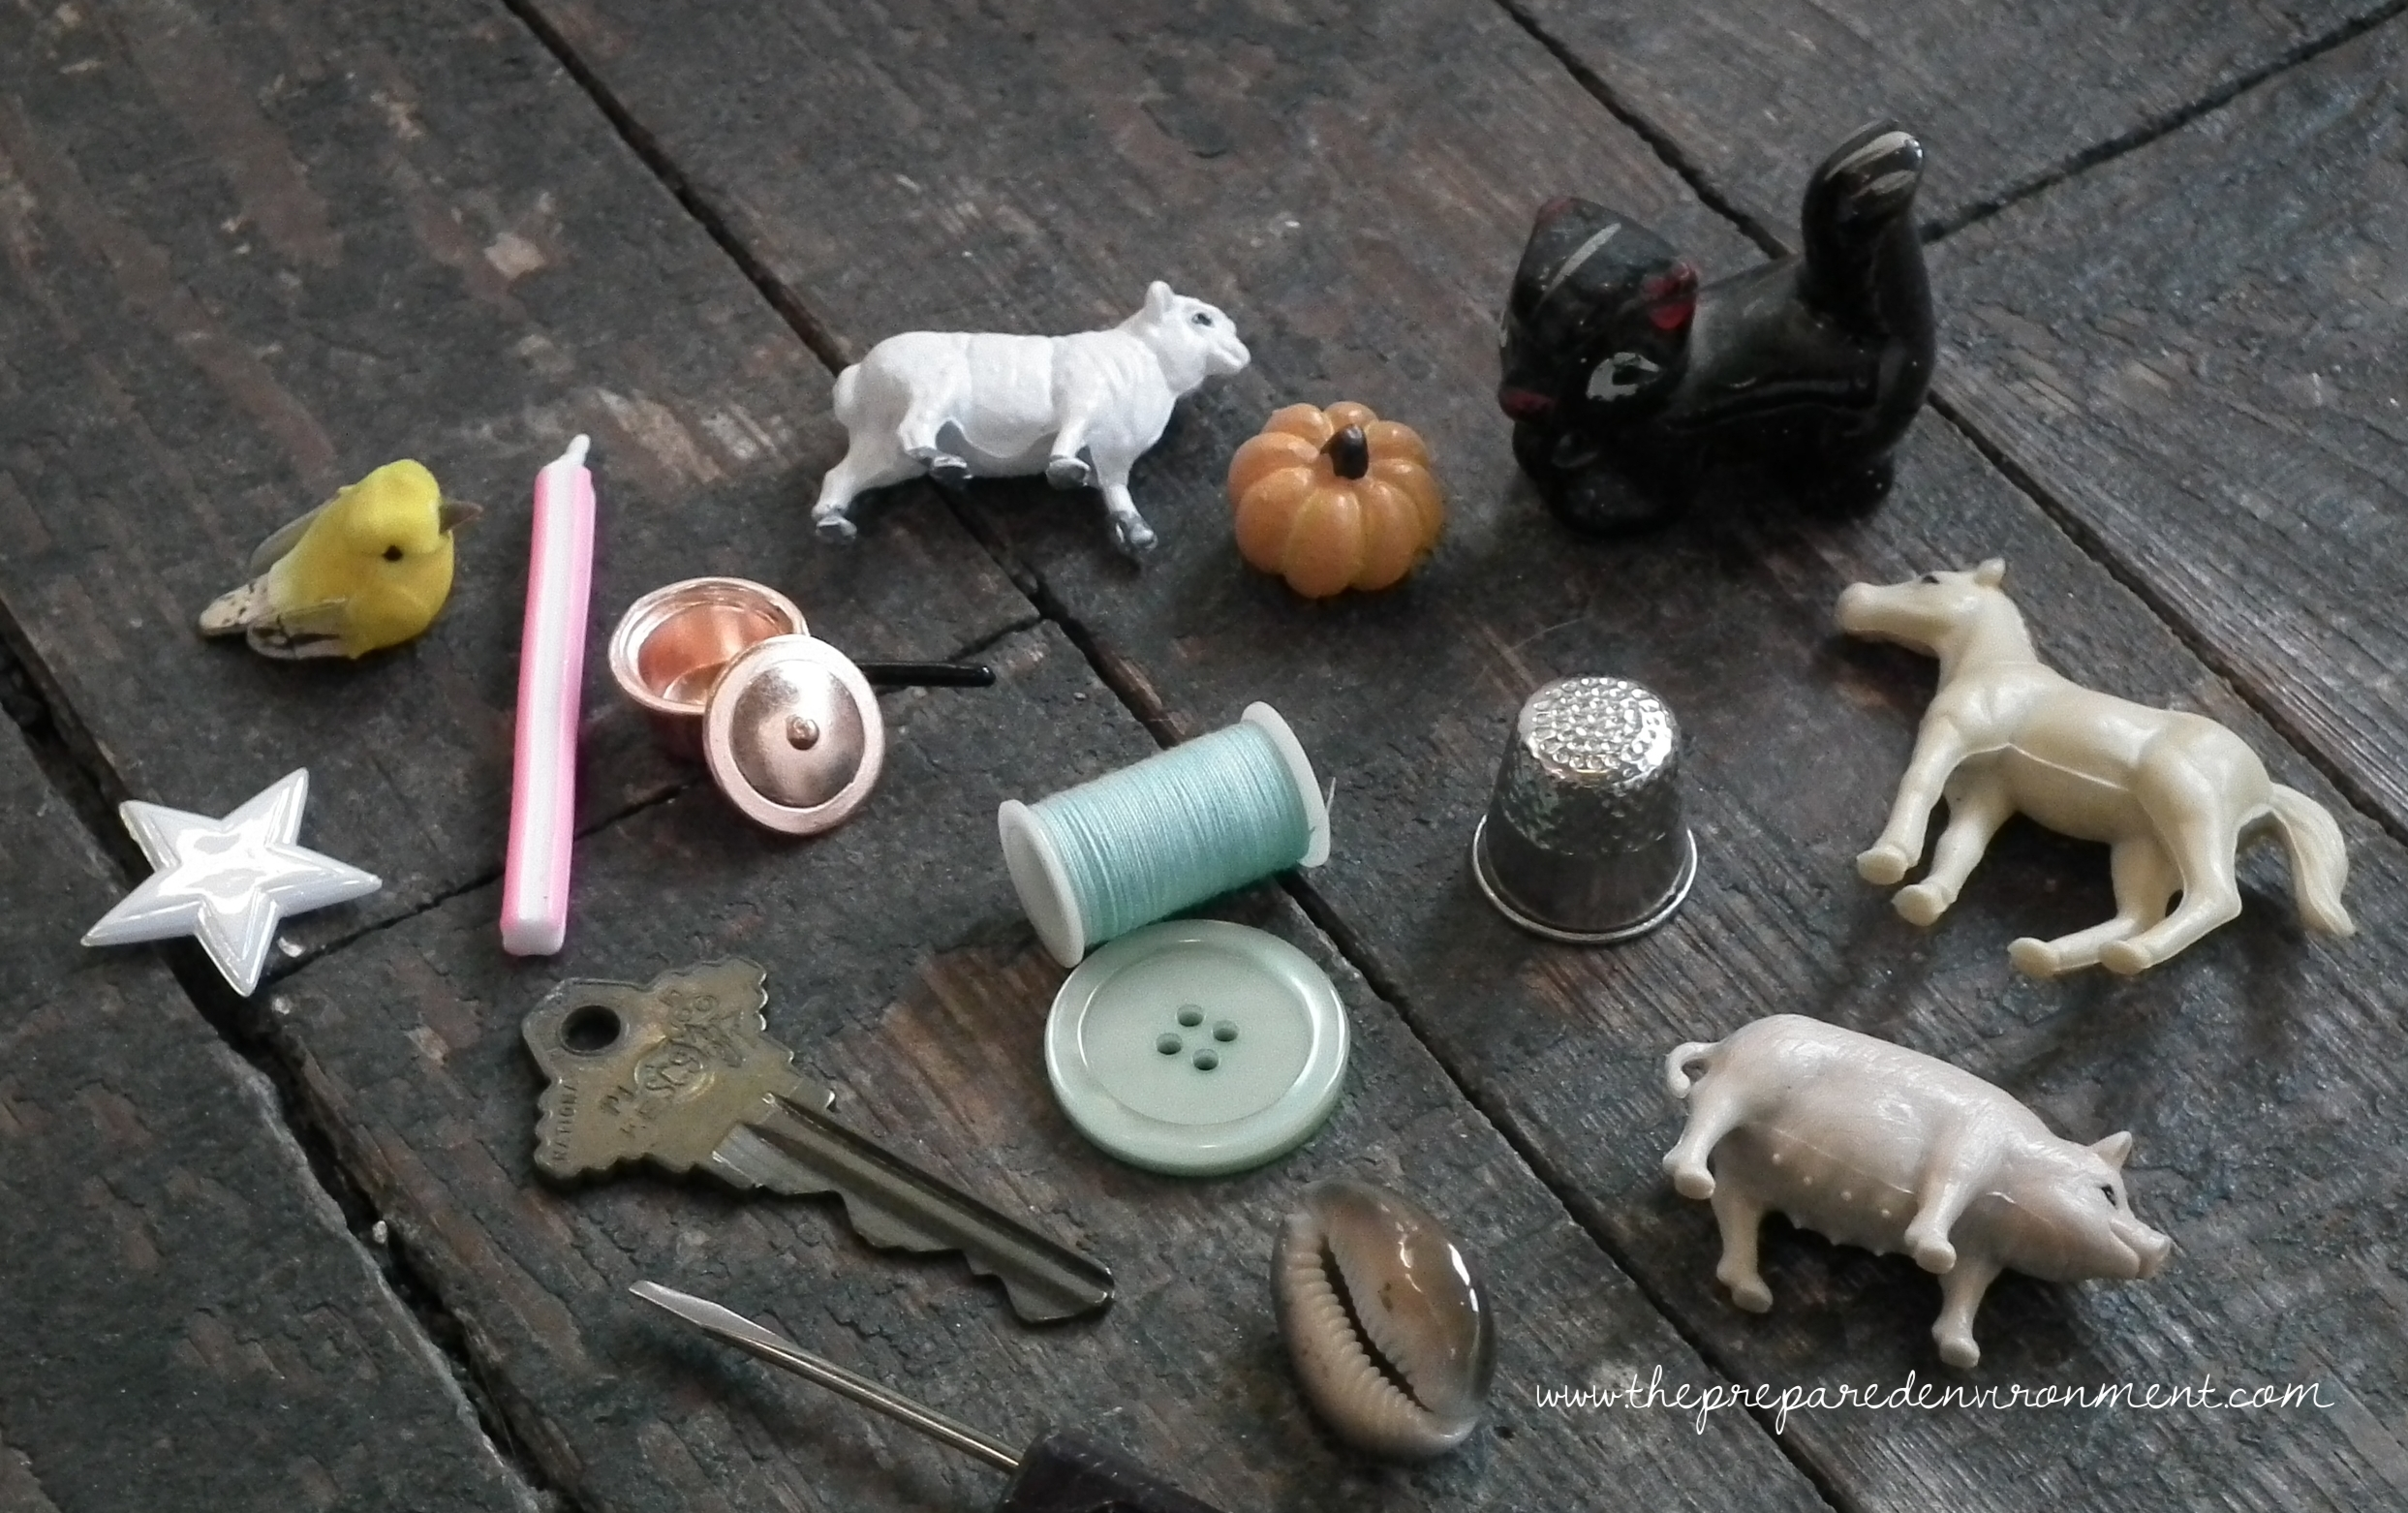 Gather a collection of small objects to play sound games.